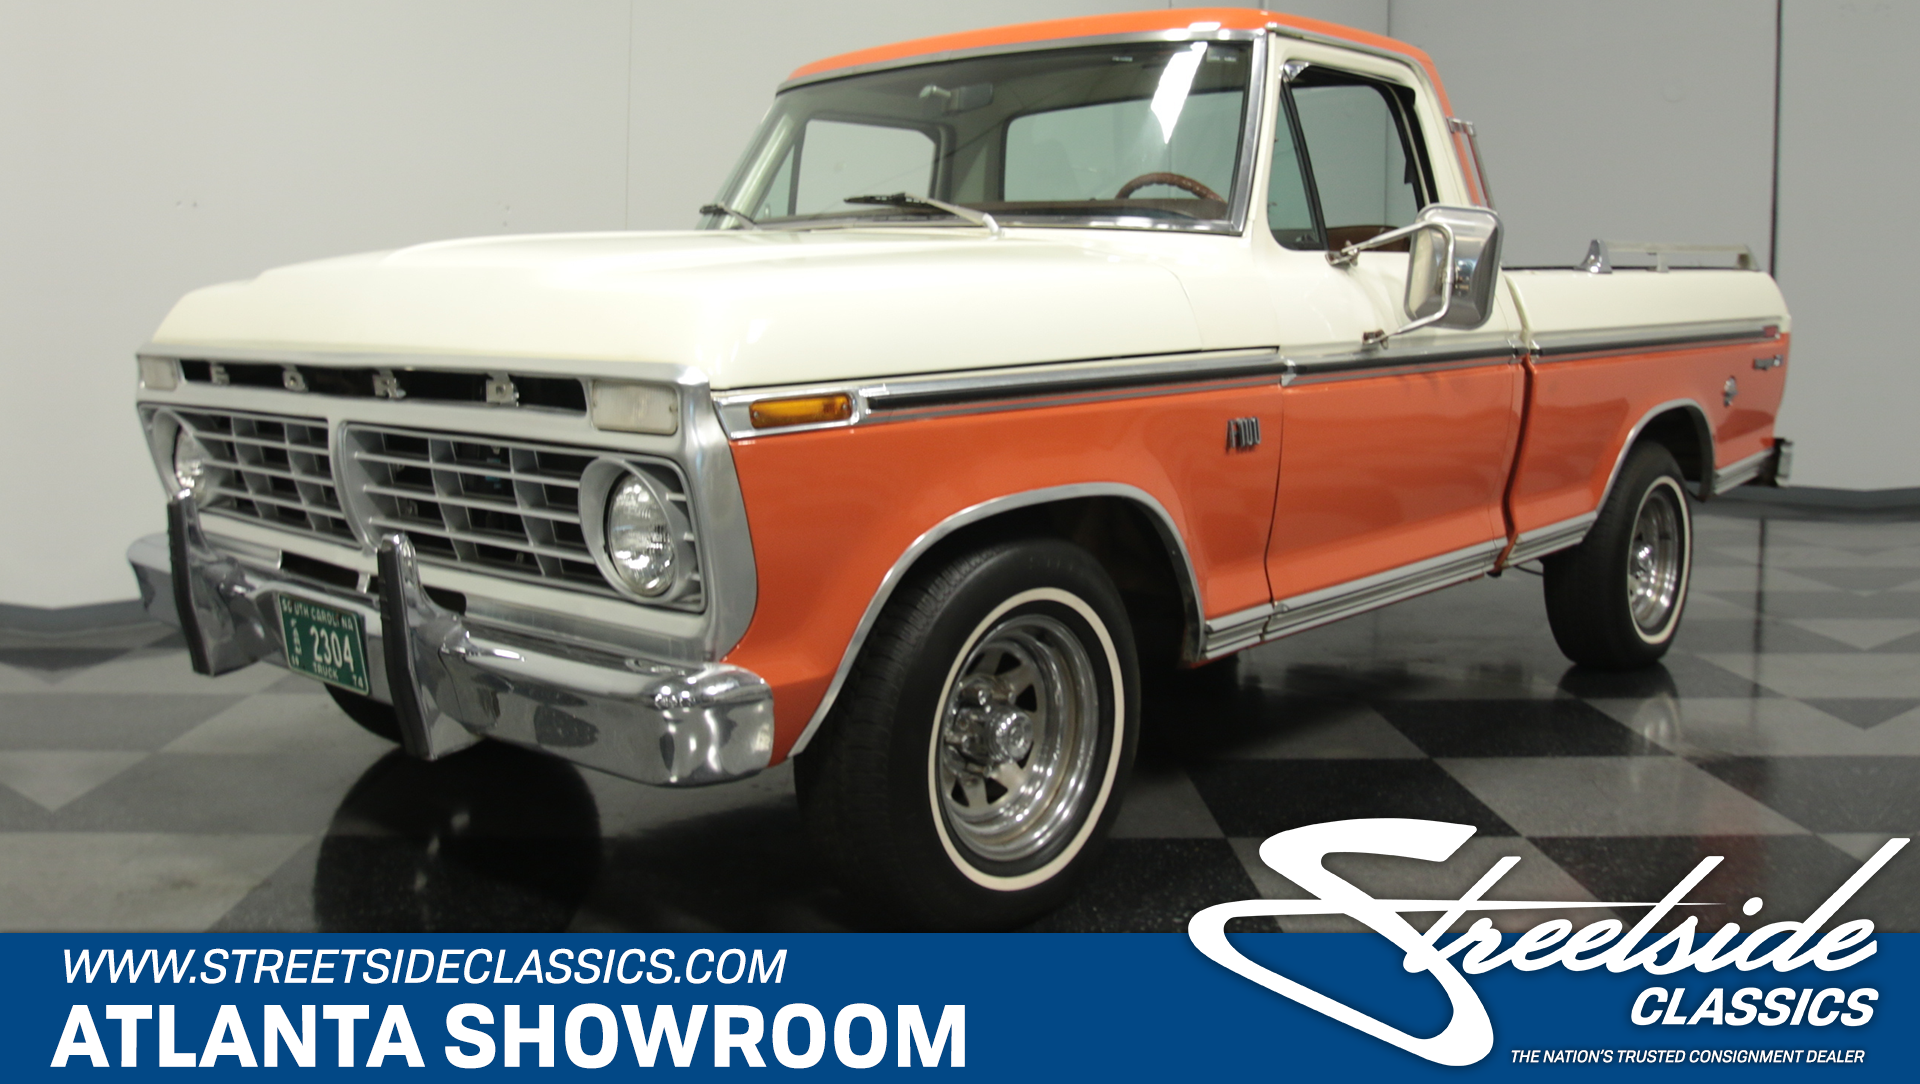 1974 Ford F 100 Streetside Classics The Nations Trusted Classic 1955 F100 Rat Rod Trucks View 360